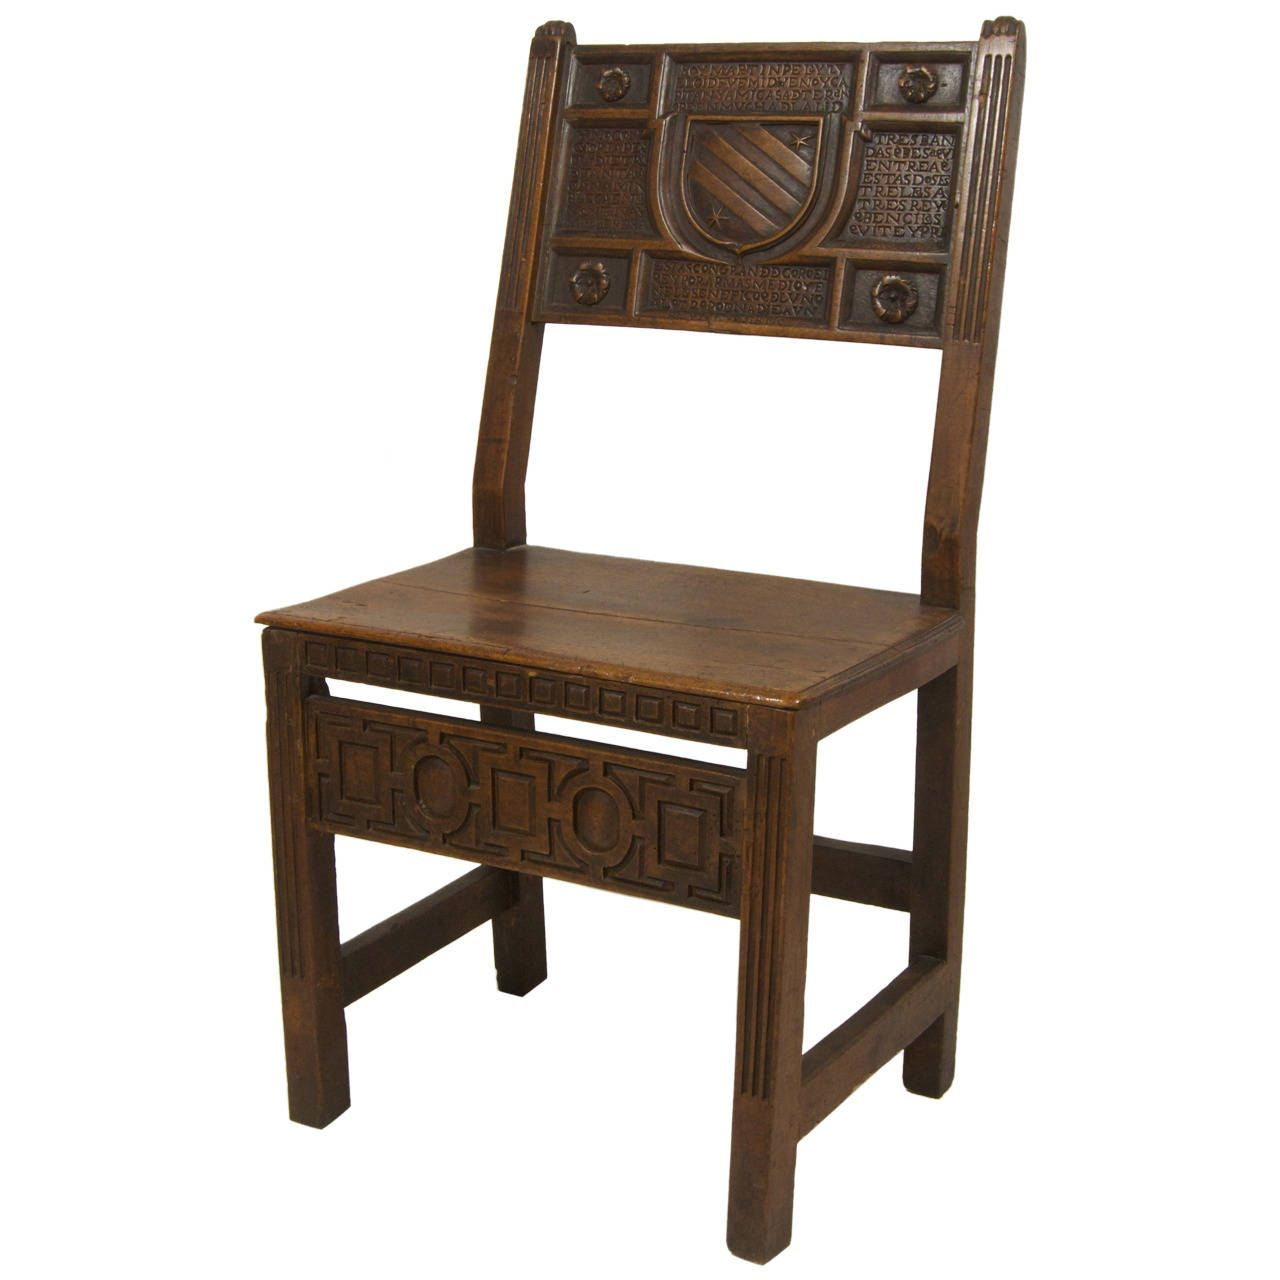 Spanish Chair 16th Century At 1stdibs Spanish Chairs Chair Antique Chairs